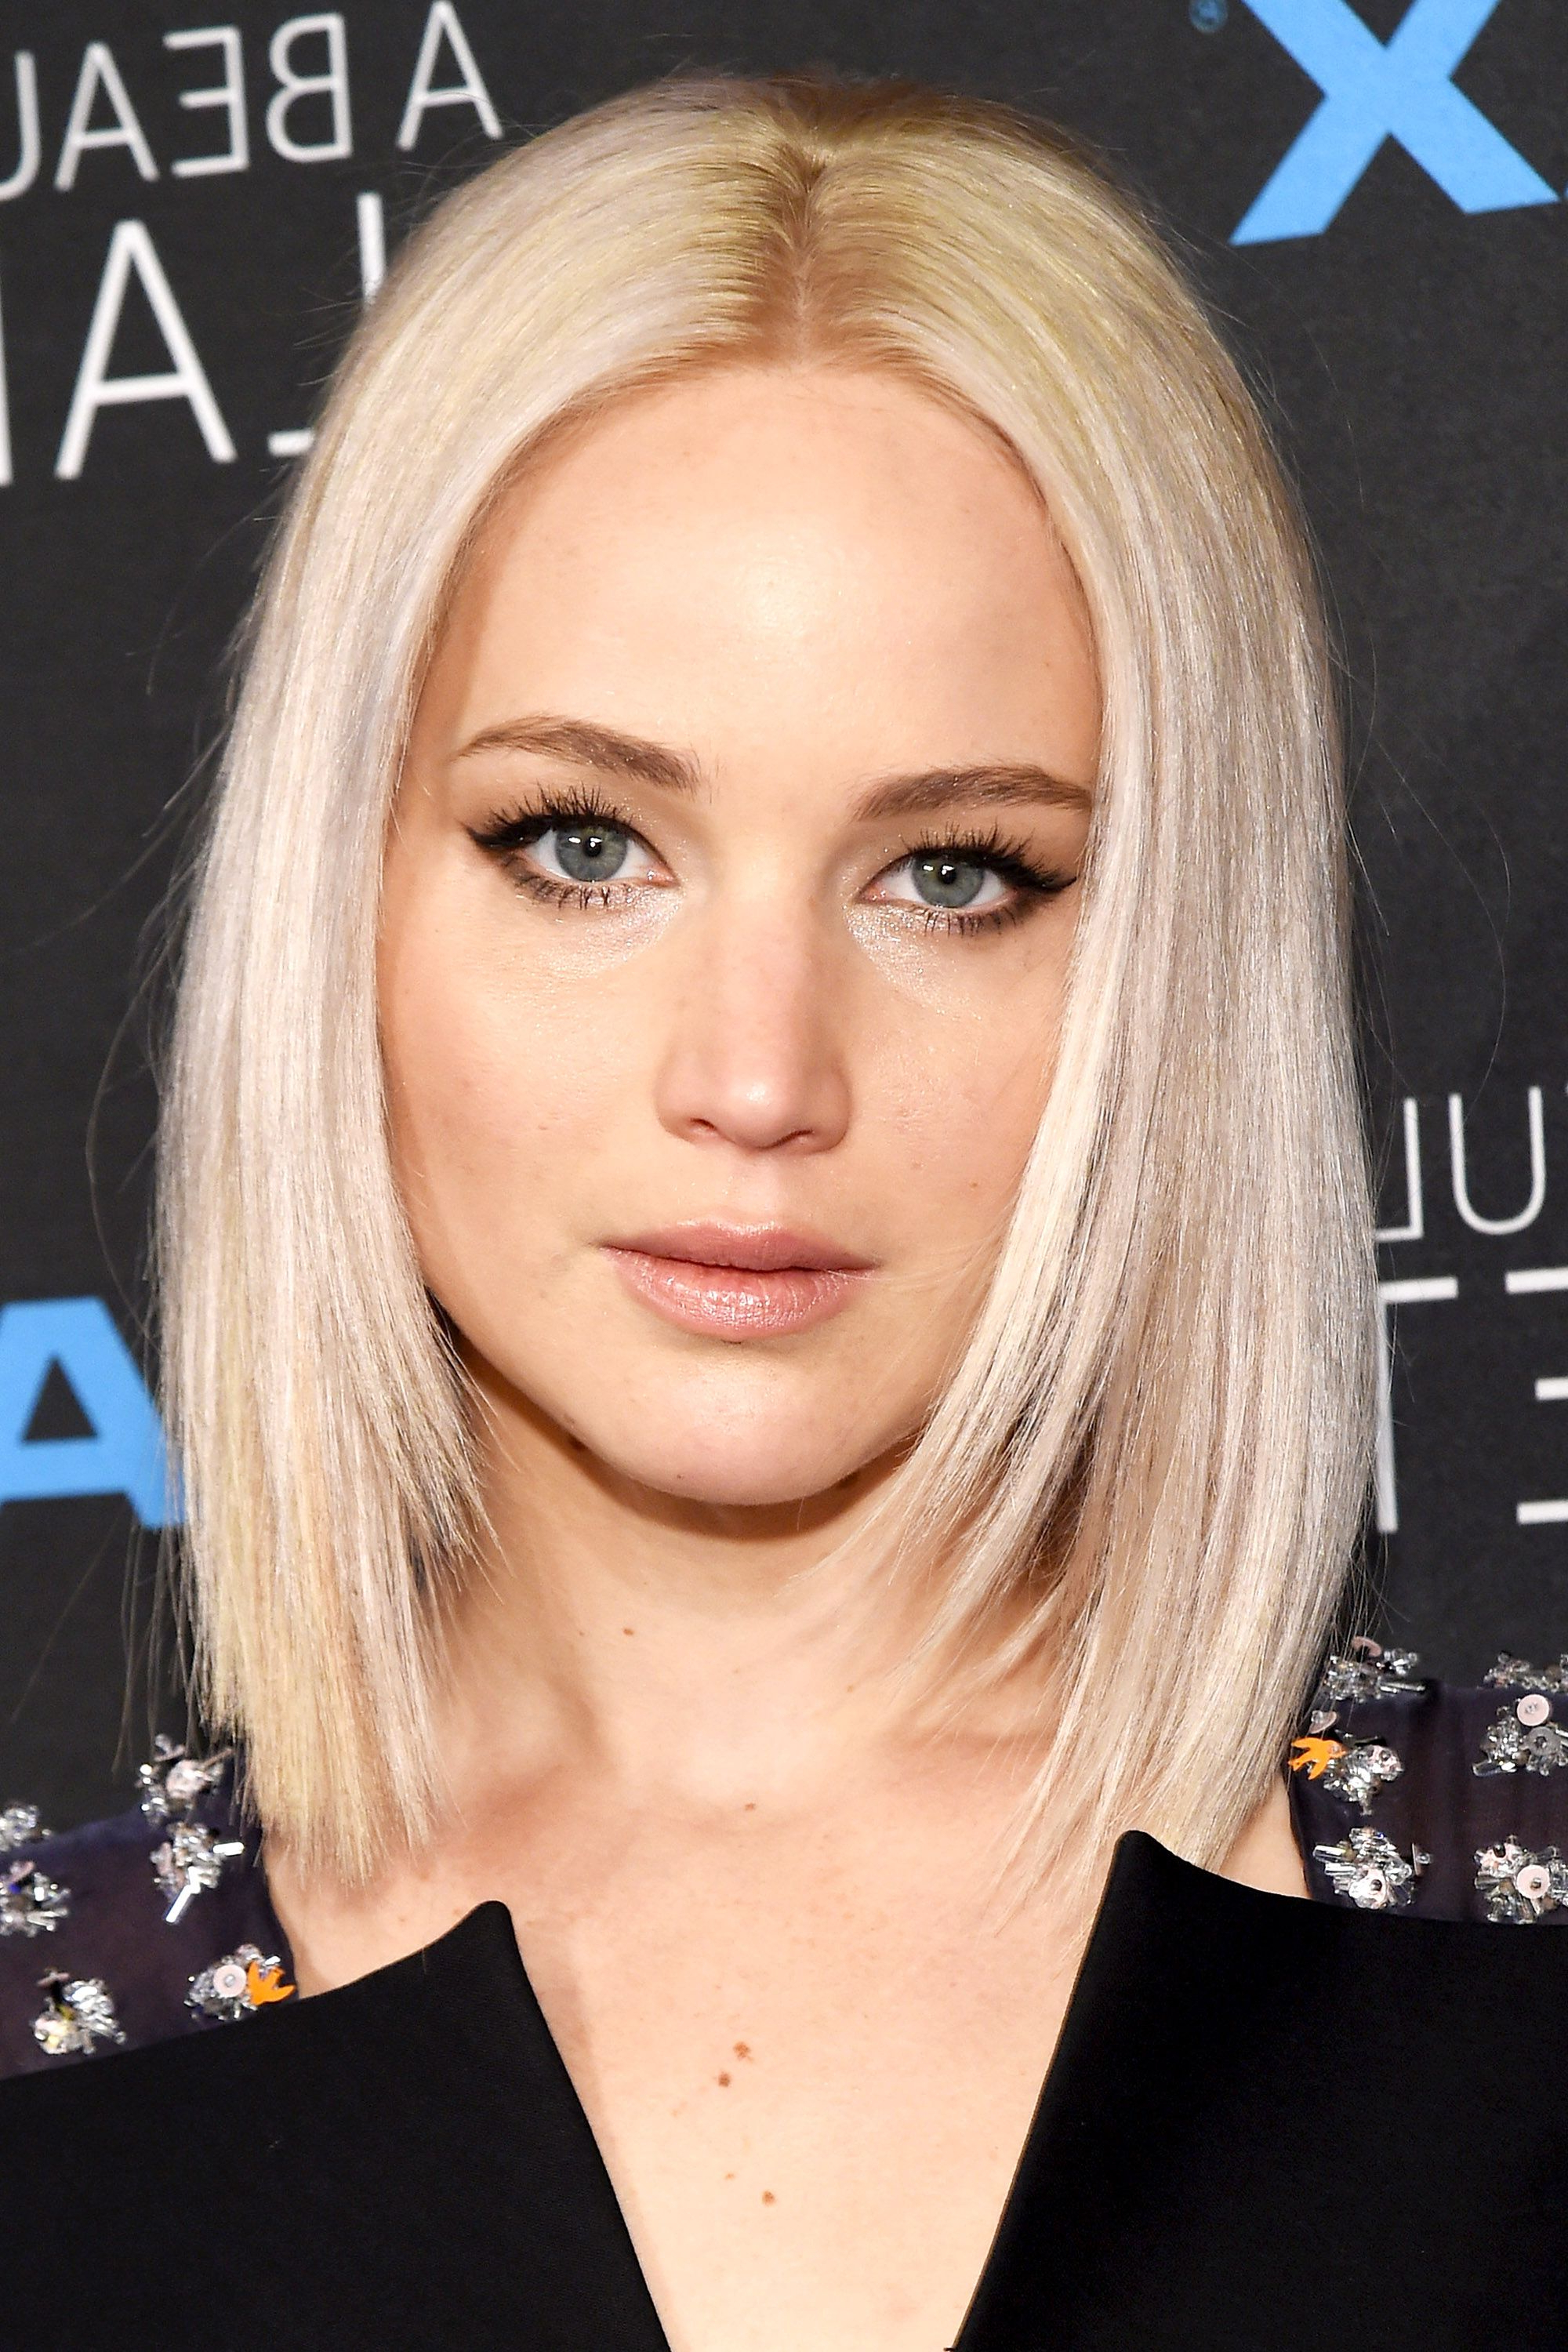 44 Short Hairstyles To Try Now   Hair Do's   Pinterest   Hair, Short With Regard To Jennifer Lawrence Short Hairstyles (View 25 of 25)